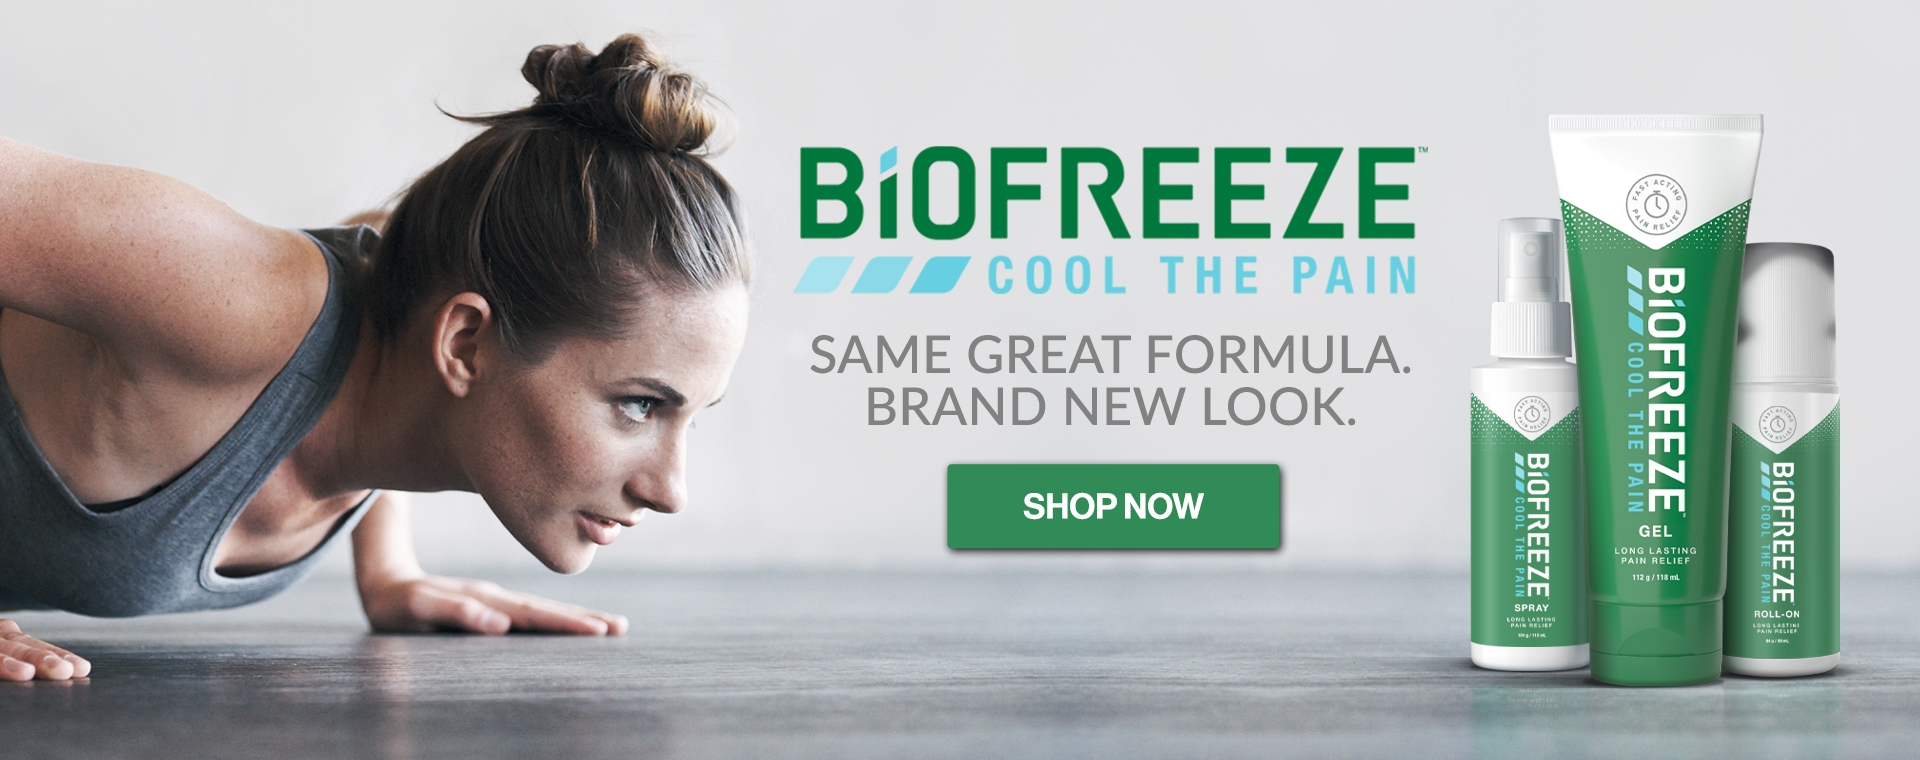 Biofreeze Pain Relief